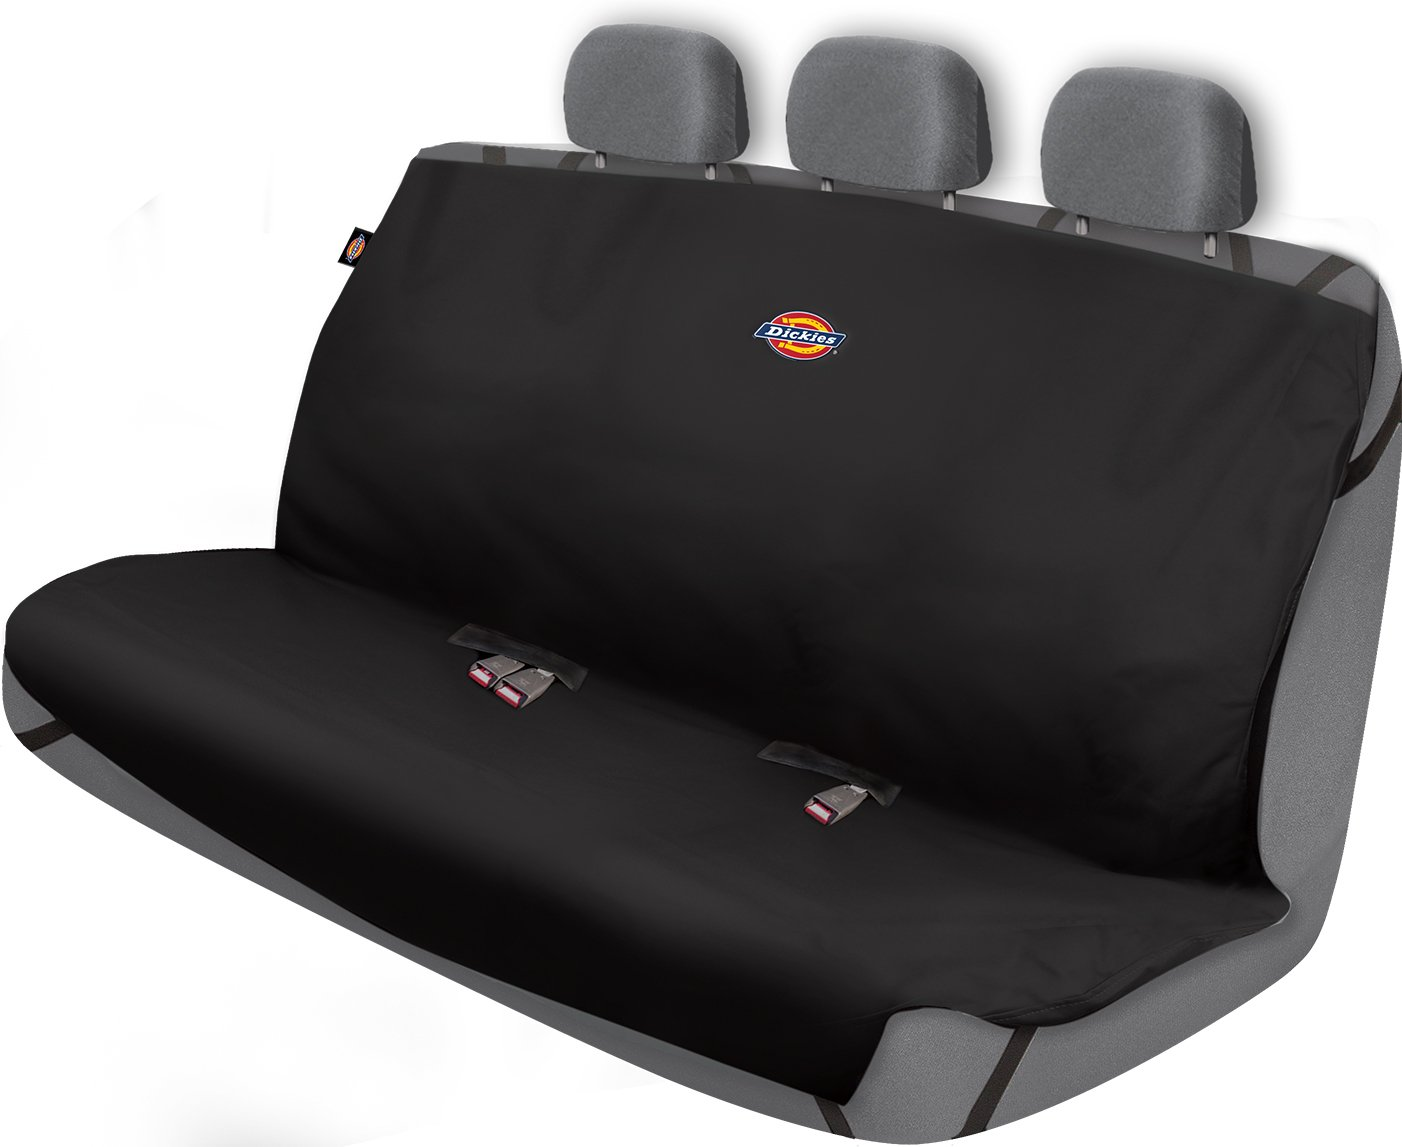 Dickies 3000721 Heavy Duty Rear Bench Seat Protector, Black by Dickies